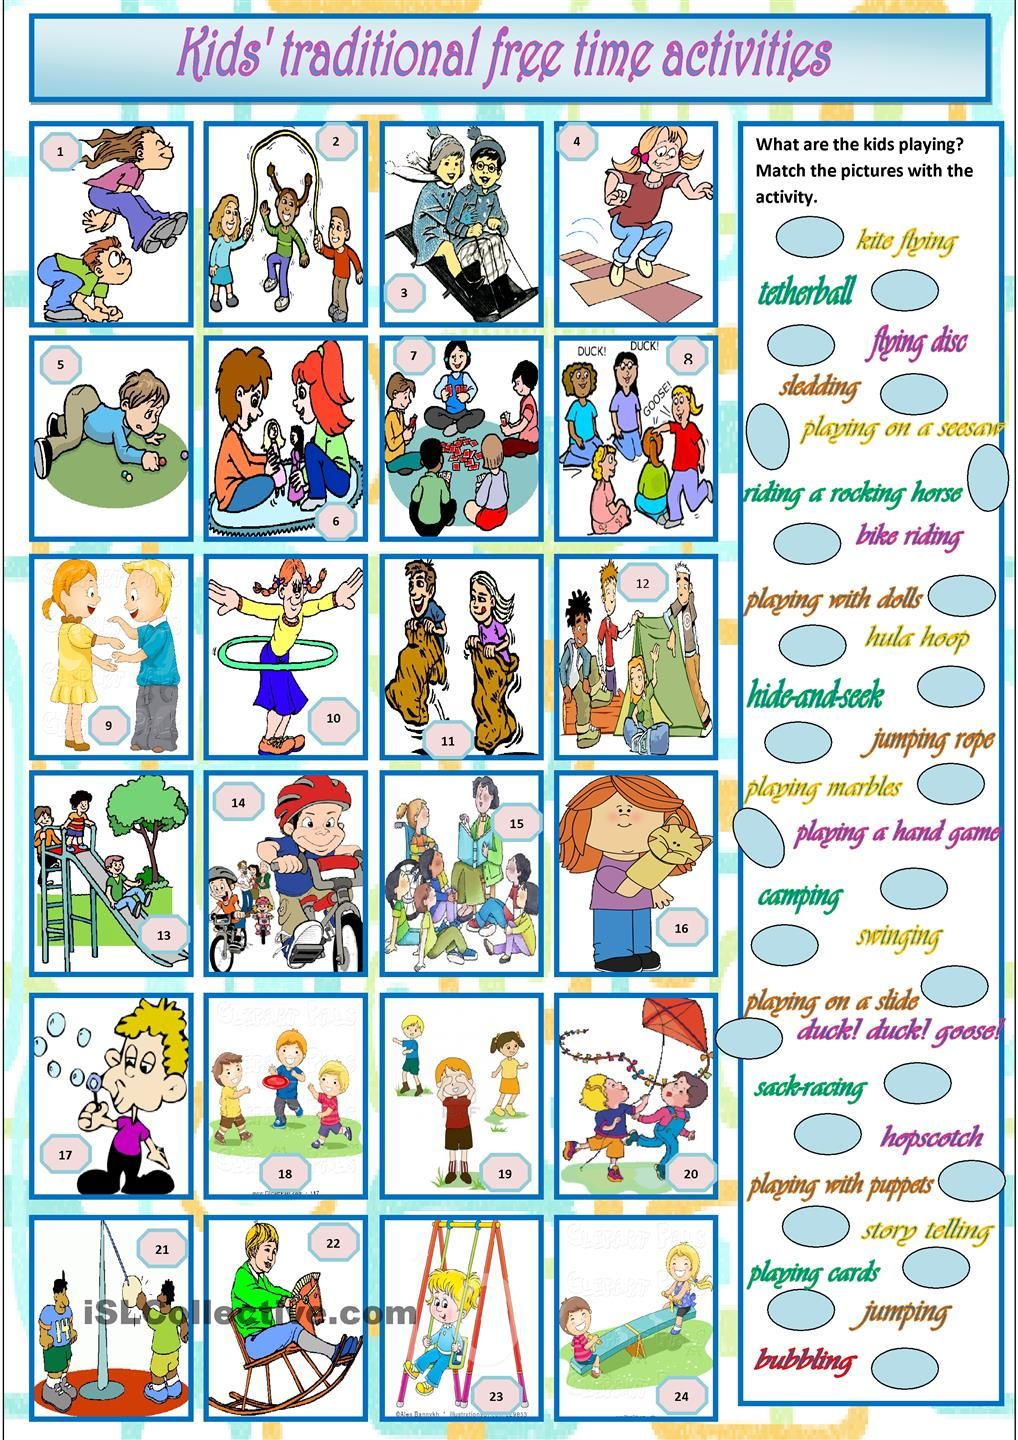 Pin by Natalia on ESL 2 | Pinterest | Time activities, Free time and ...